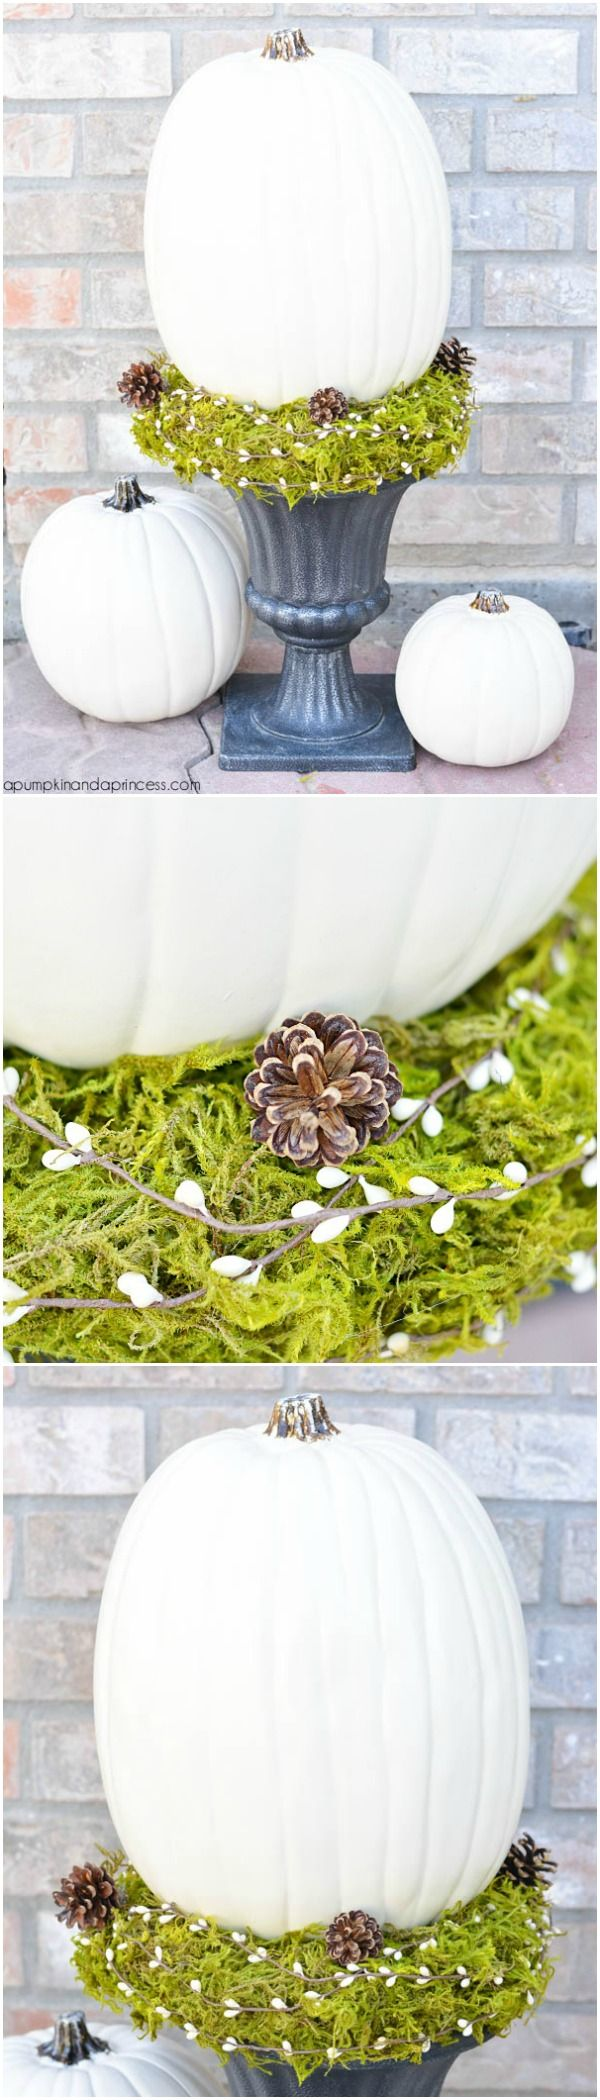 DIY Pumpkin Topiary tutorial #MichaelsMakers @crystalowens